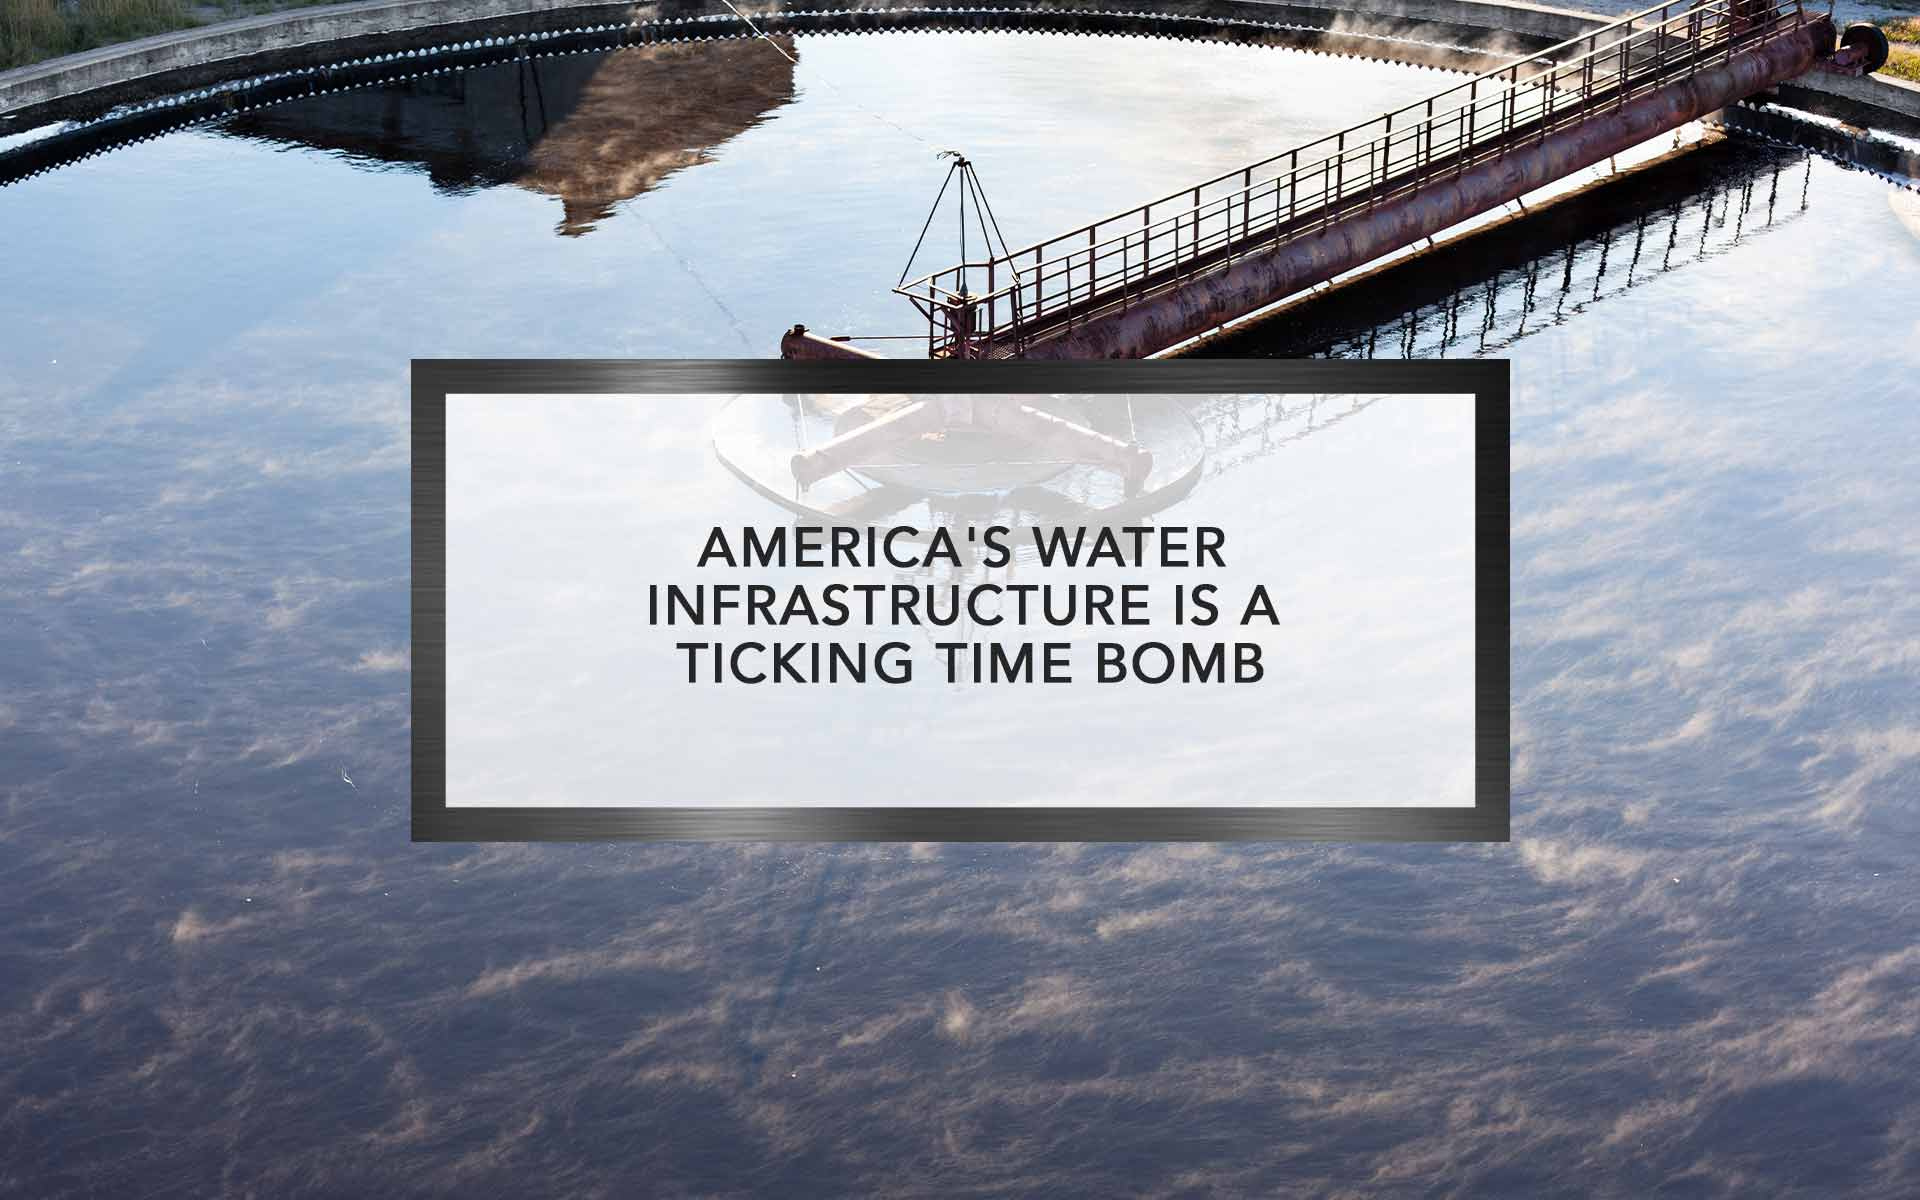 America's Water Infrastructure is a Ticking Time Bomb